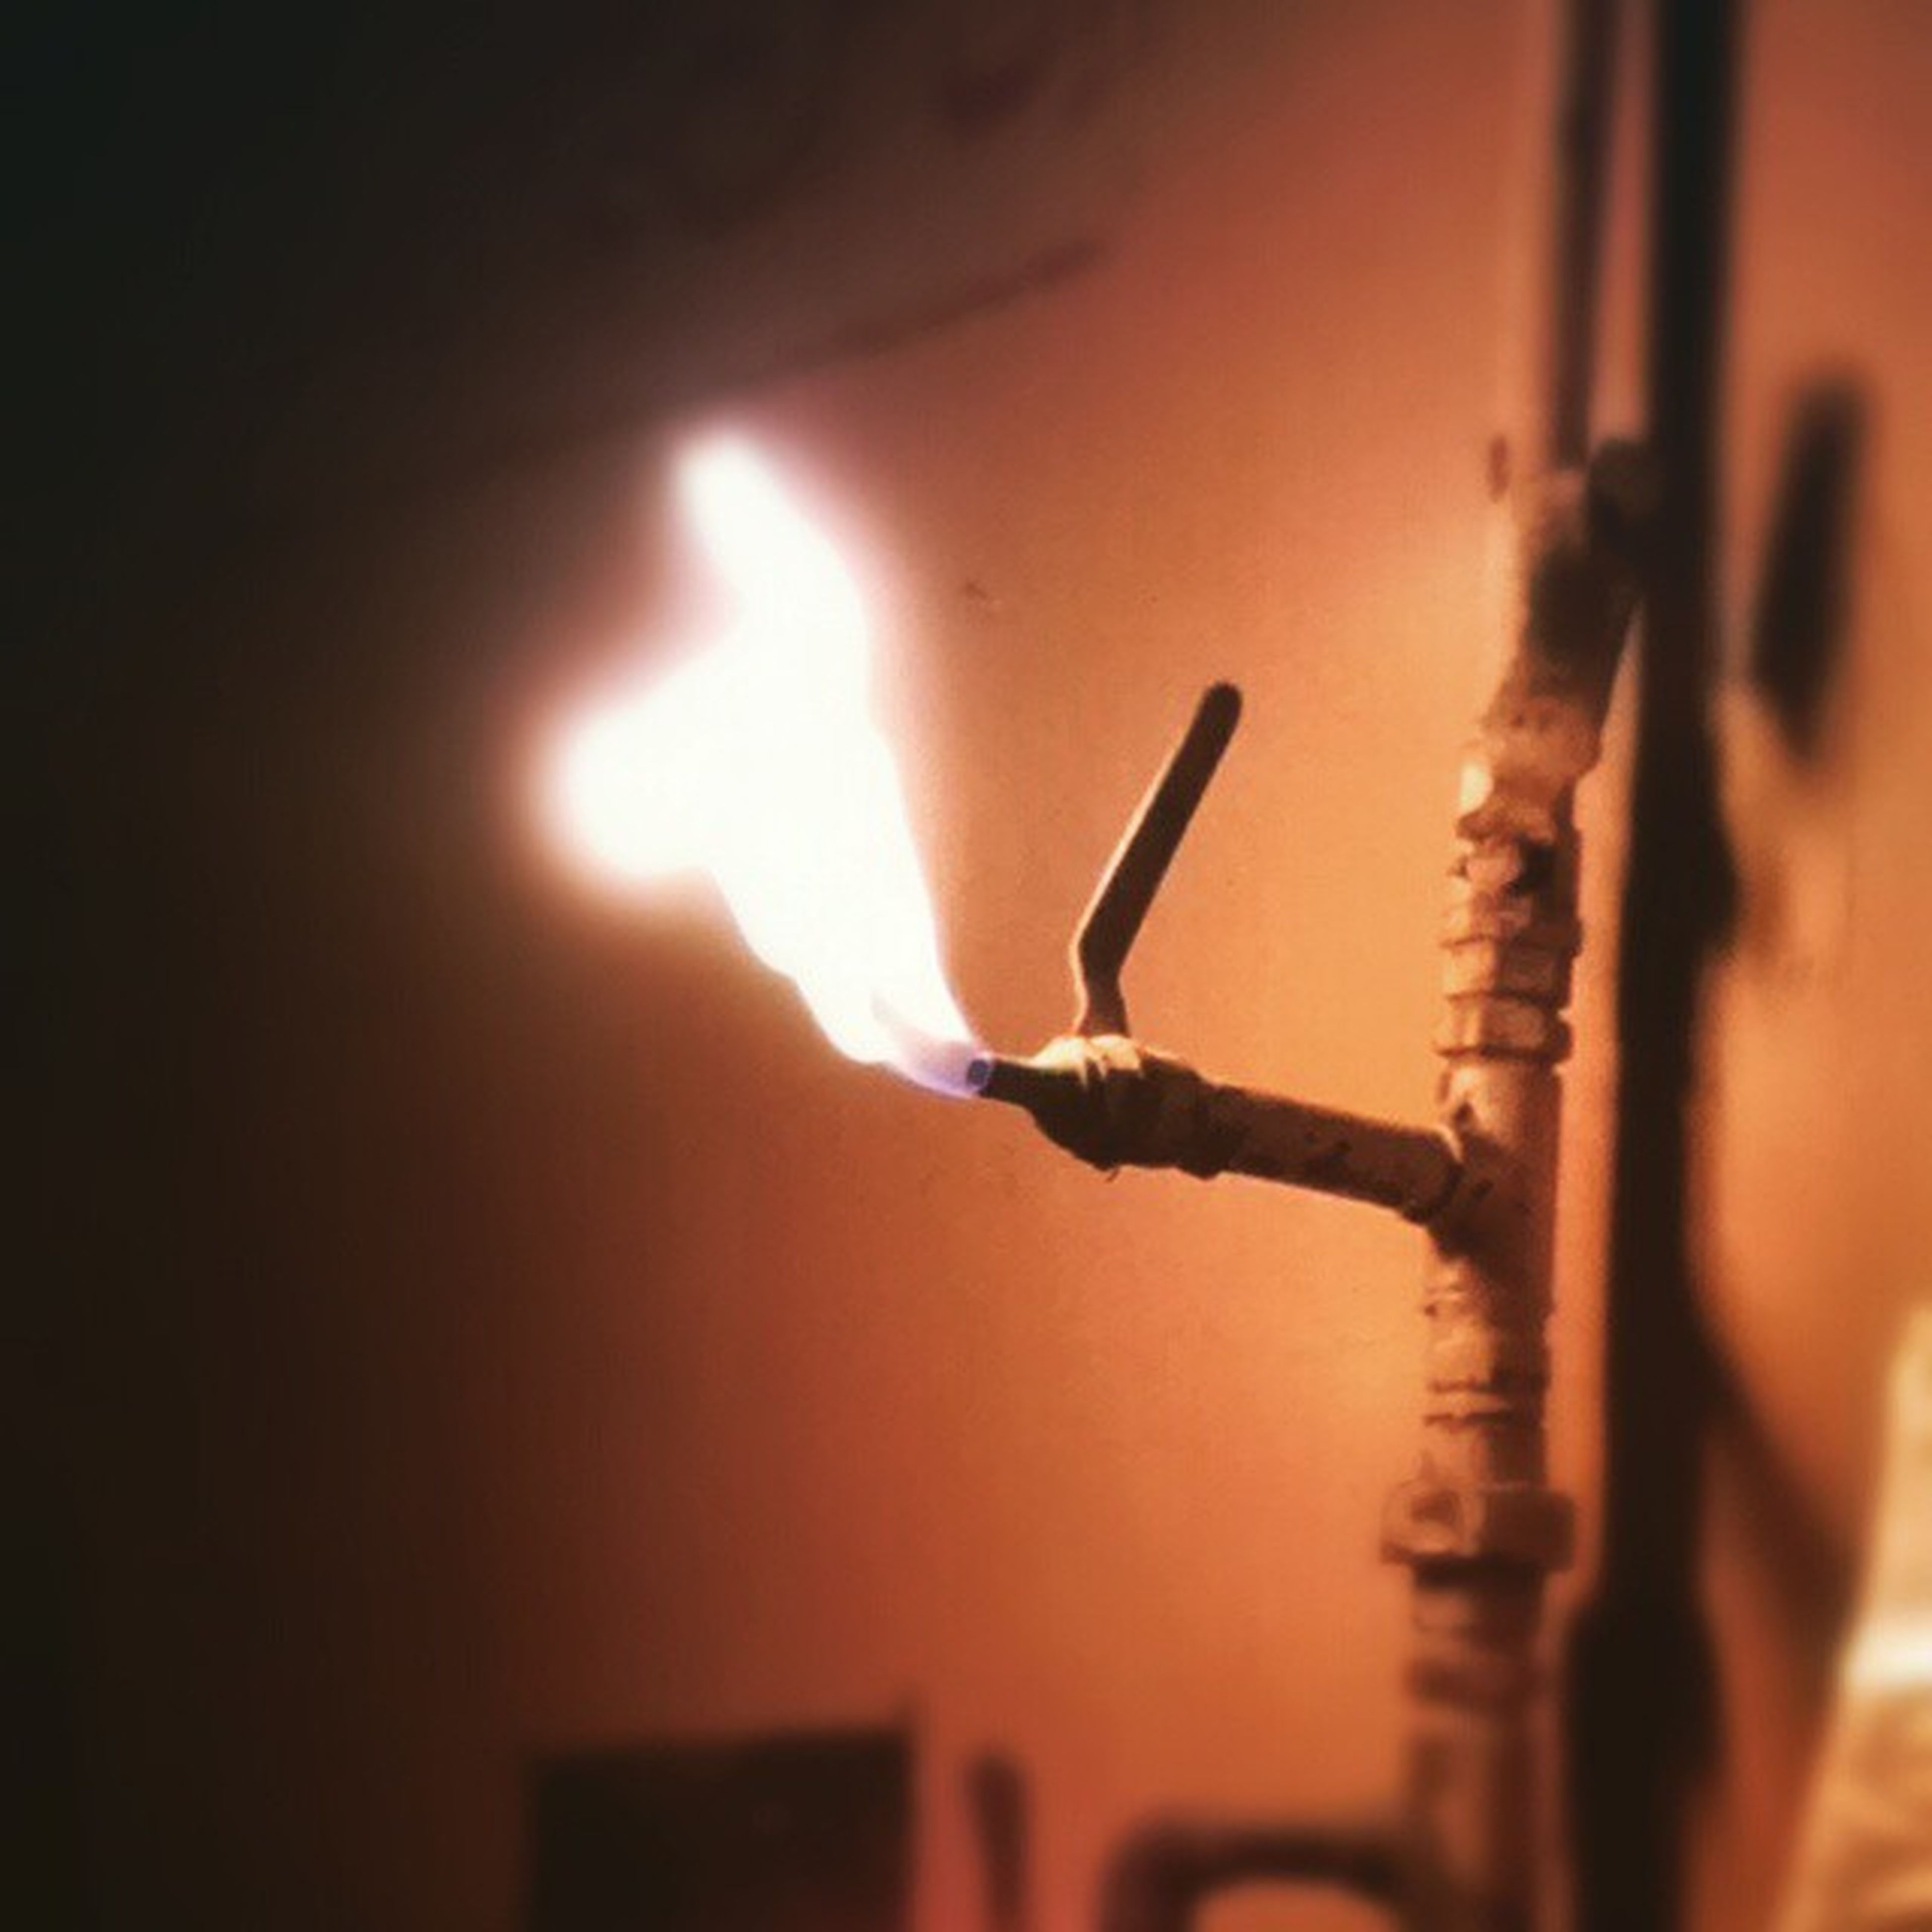 burning, flame, fire - natural phenomenon, indoors, illuminated, night, glowing, heat - temperature, close-up, selective focus, orange color, focus on foreground, light - natural phenomenon, fire, sunset, dark, motion, lit, danger, silhouette